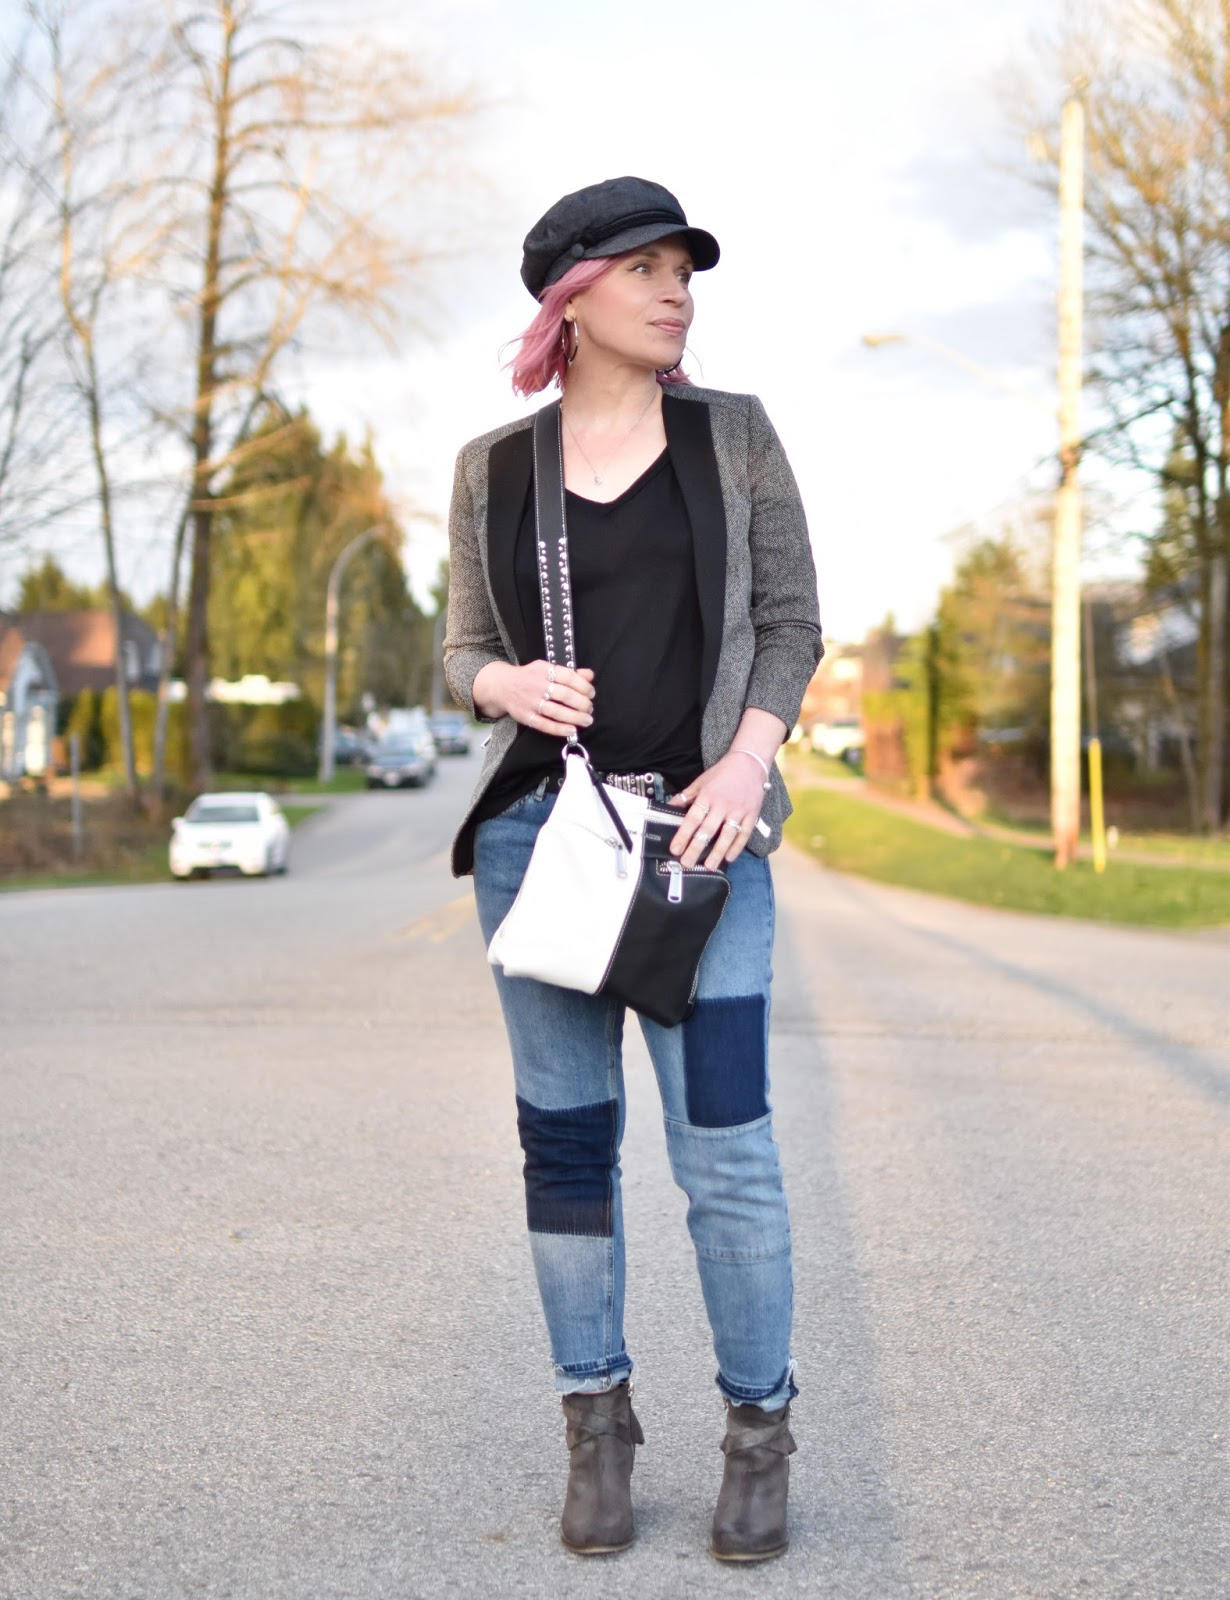 Monika Faulkner outfit inspiration - styling patchwork jeans with a blazer, western-inspired booties, and a baker boy cap